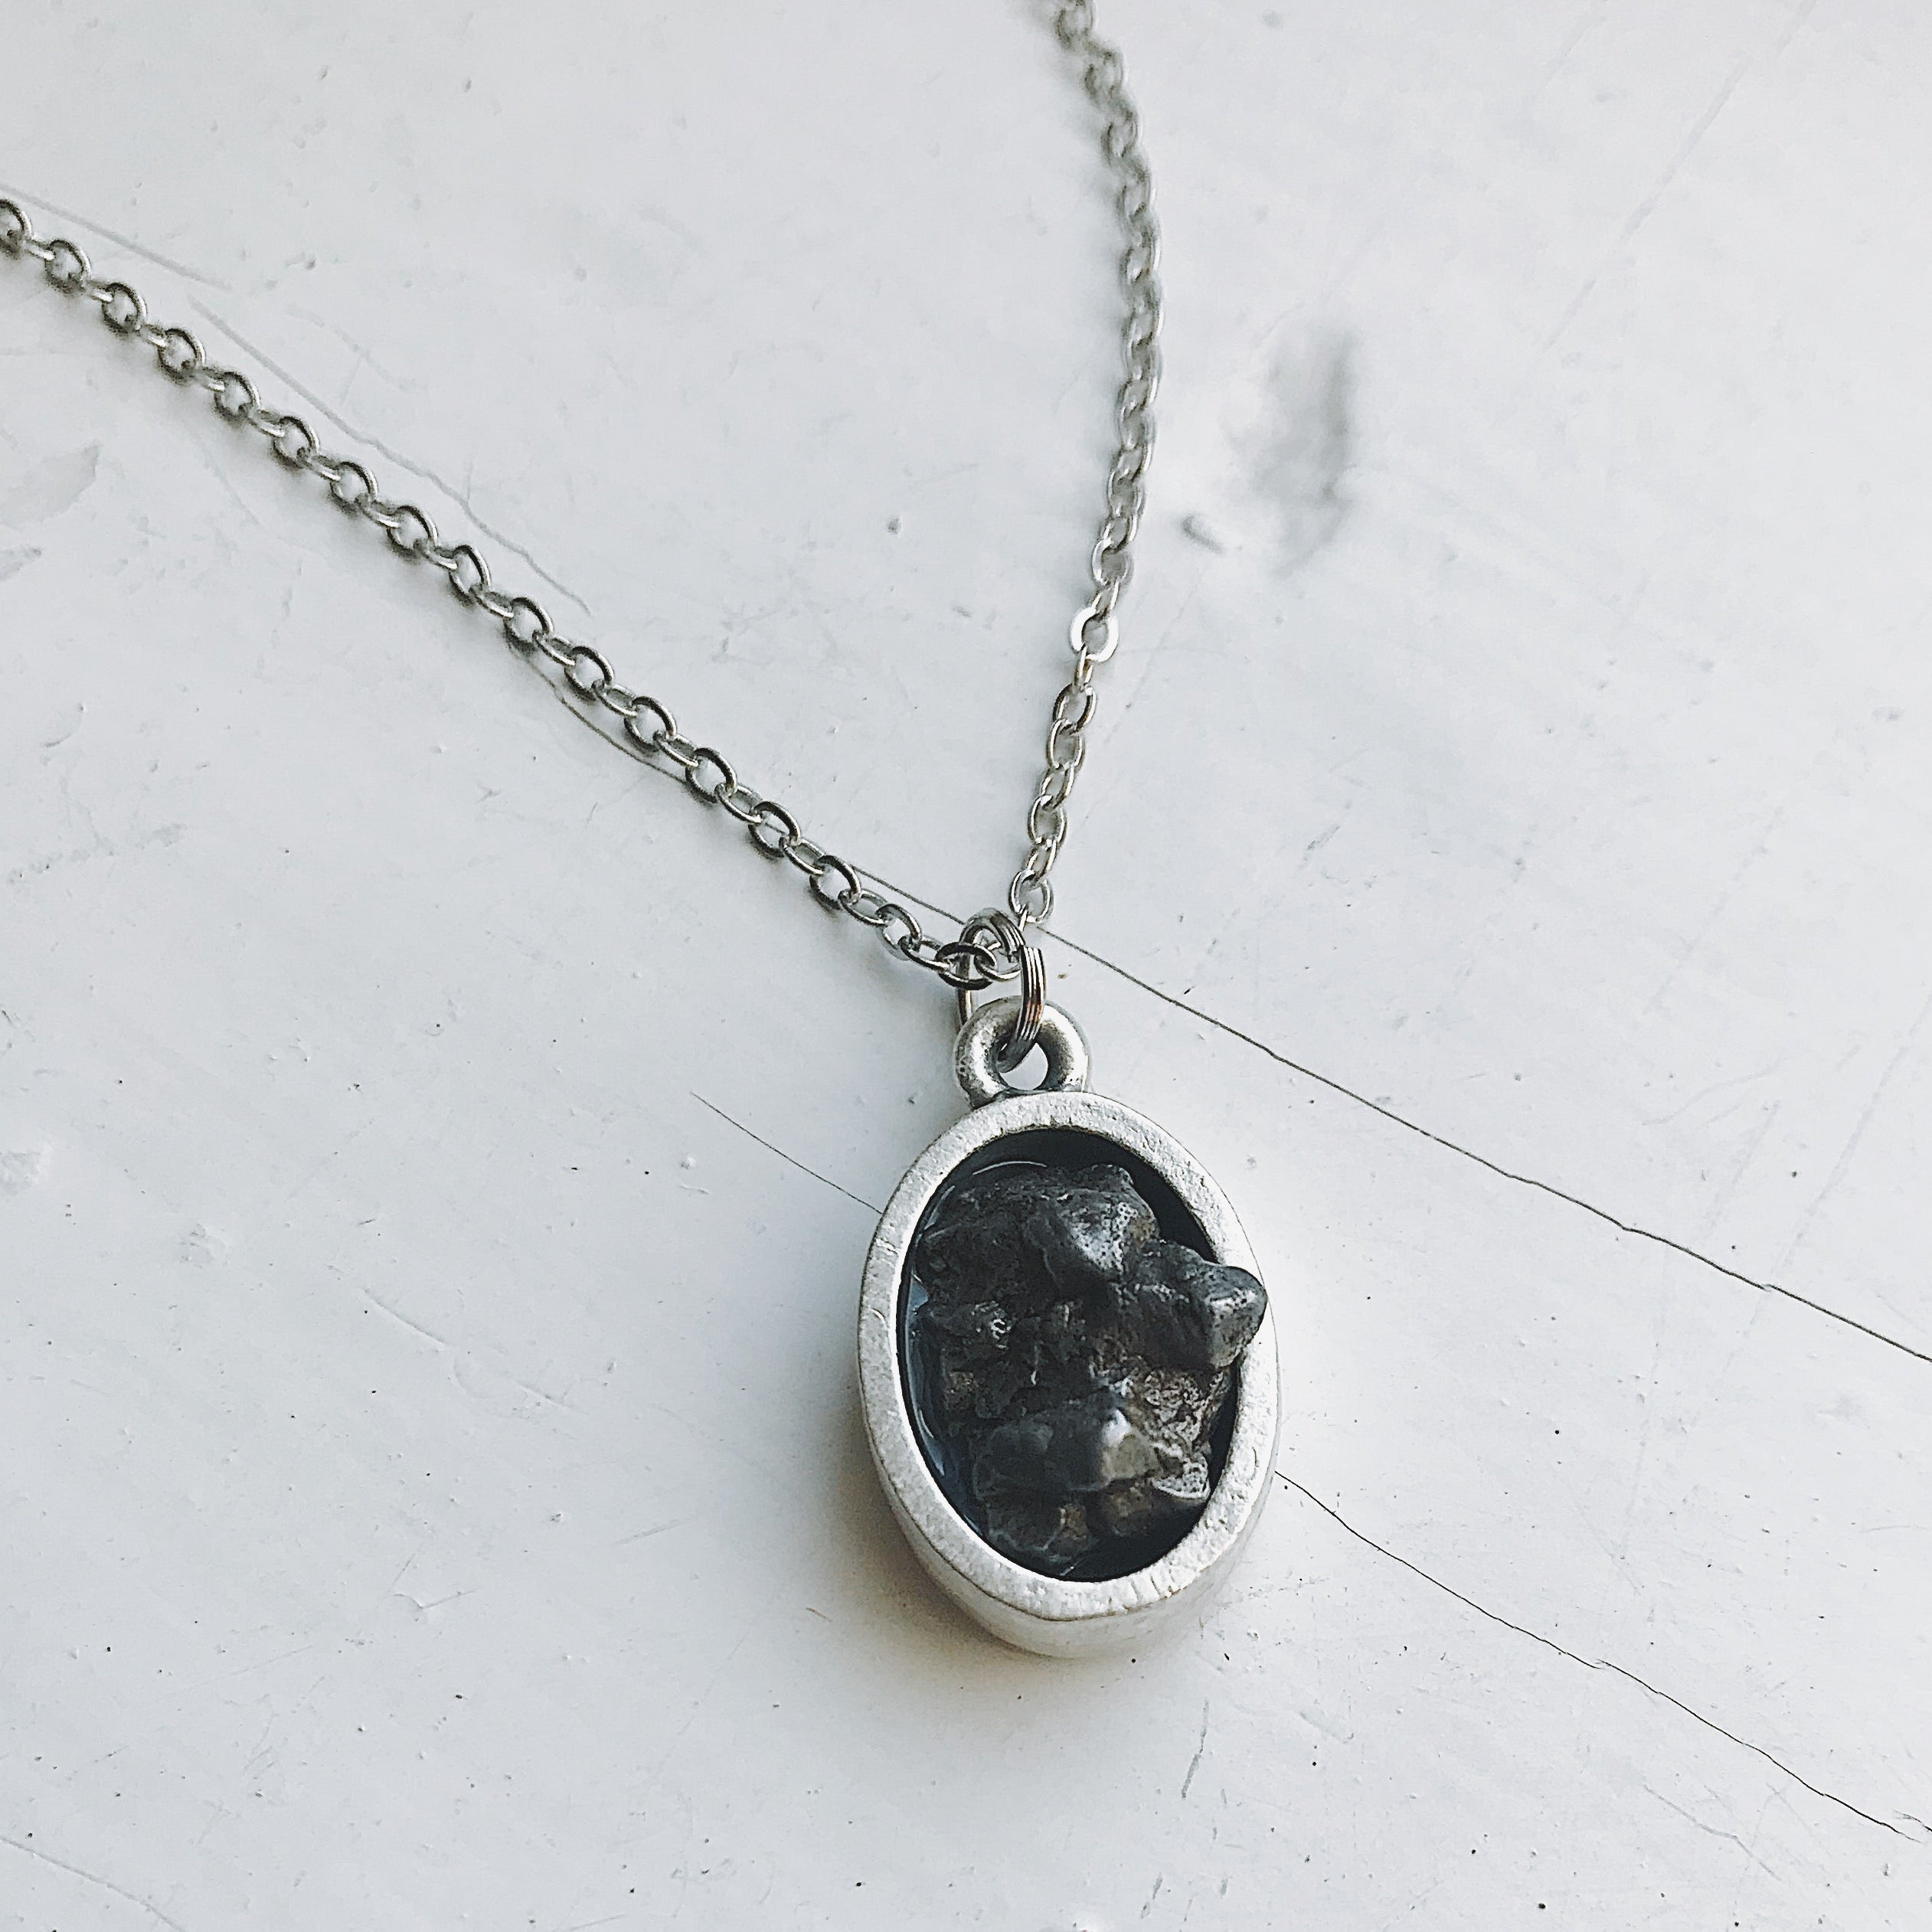 Oval Raw Meteorite Pendant Necklace in Matte Brushed Silver - Yugen Tribe